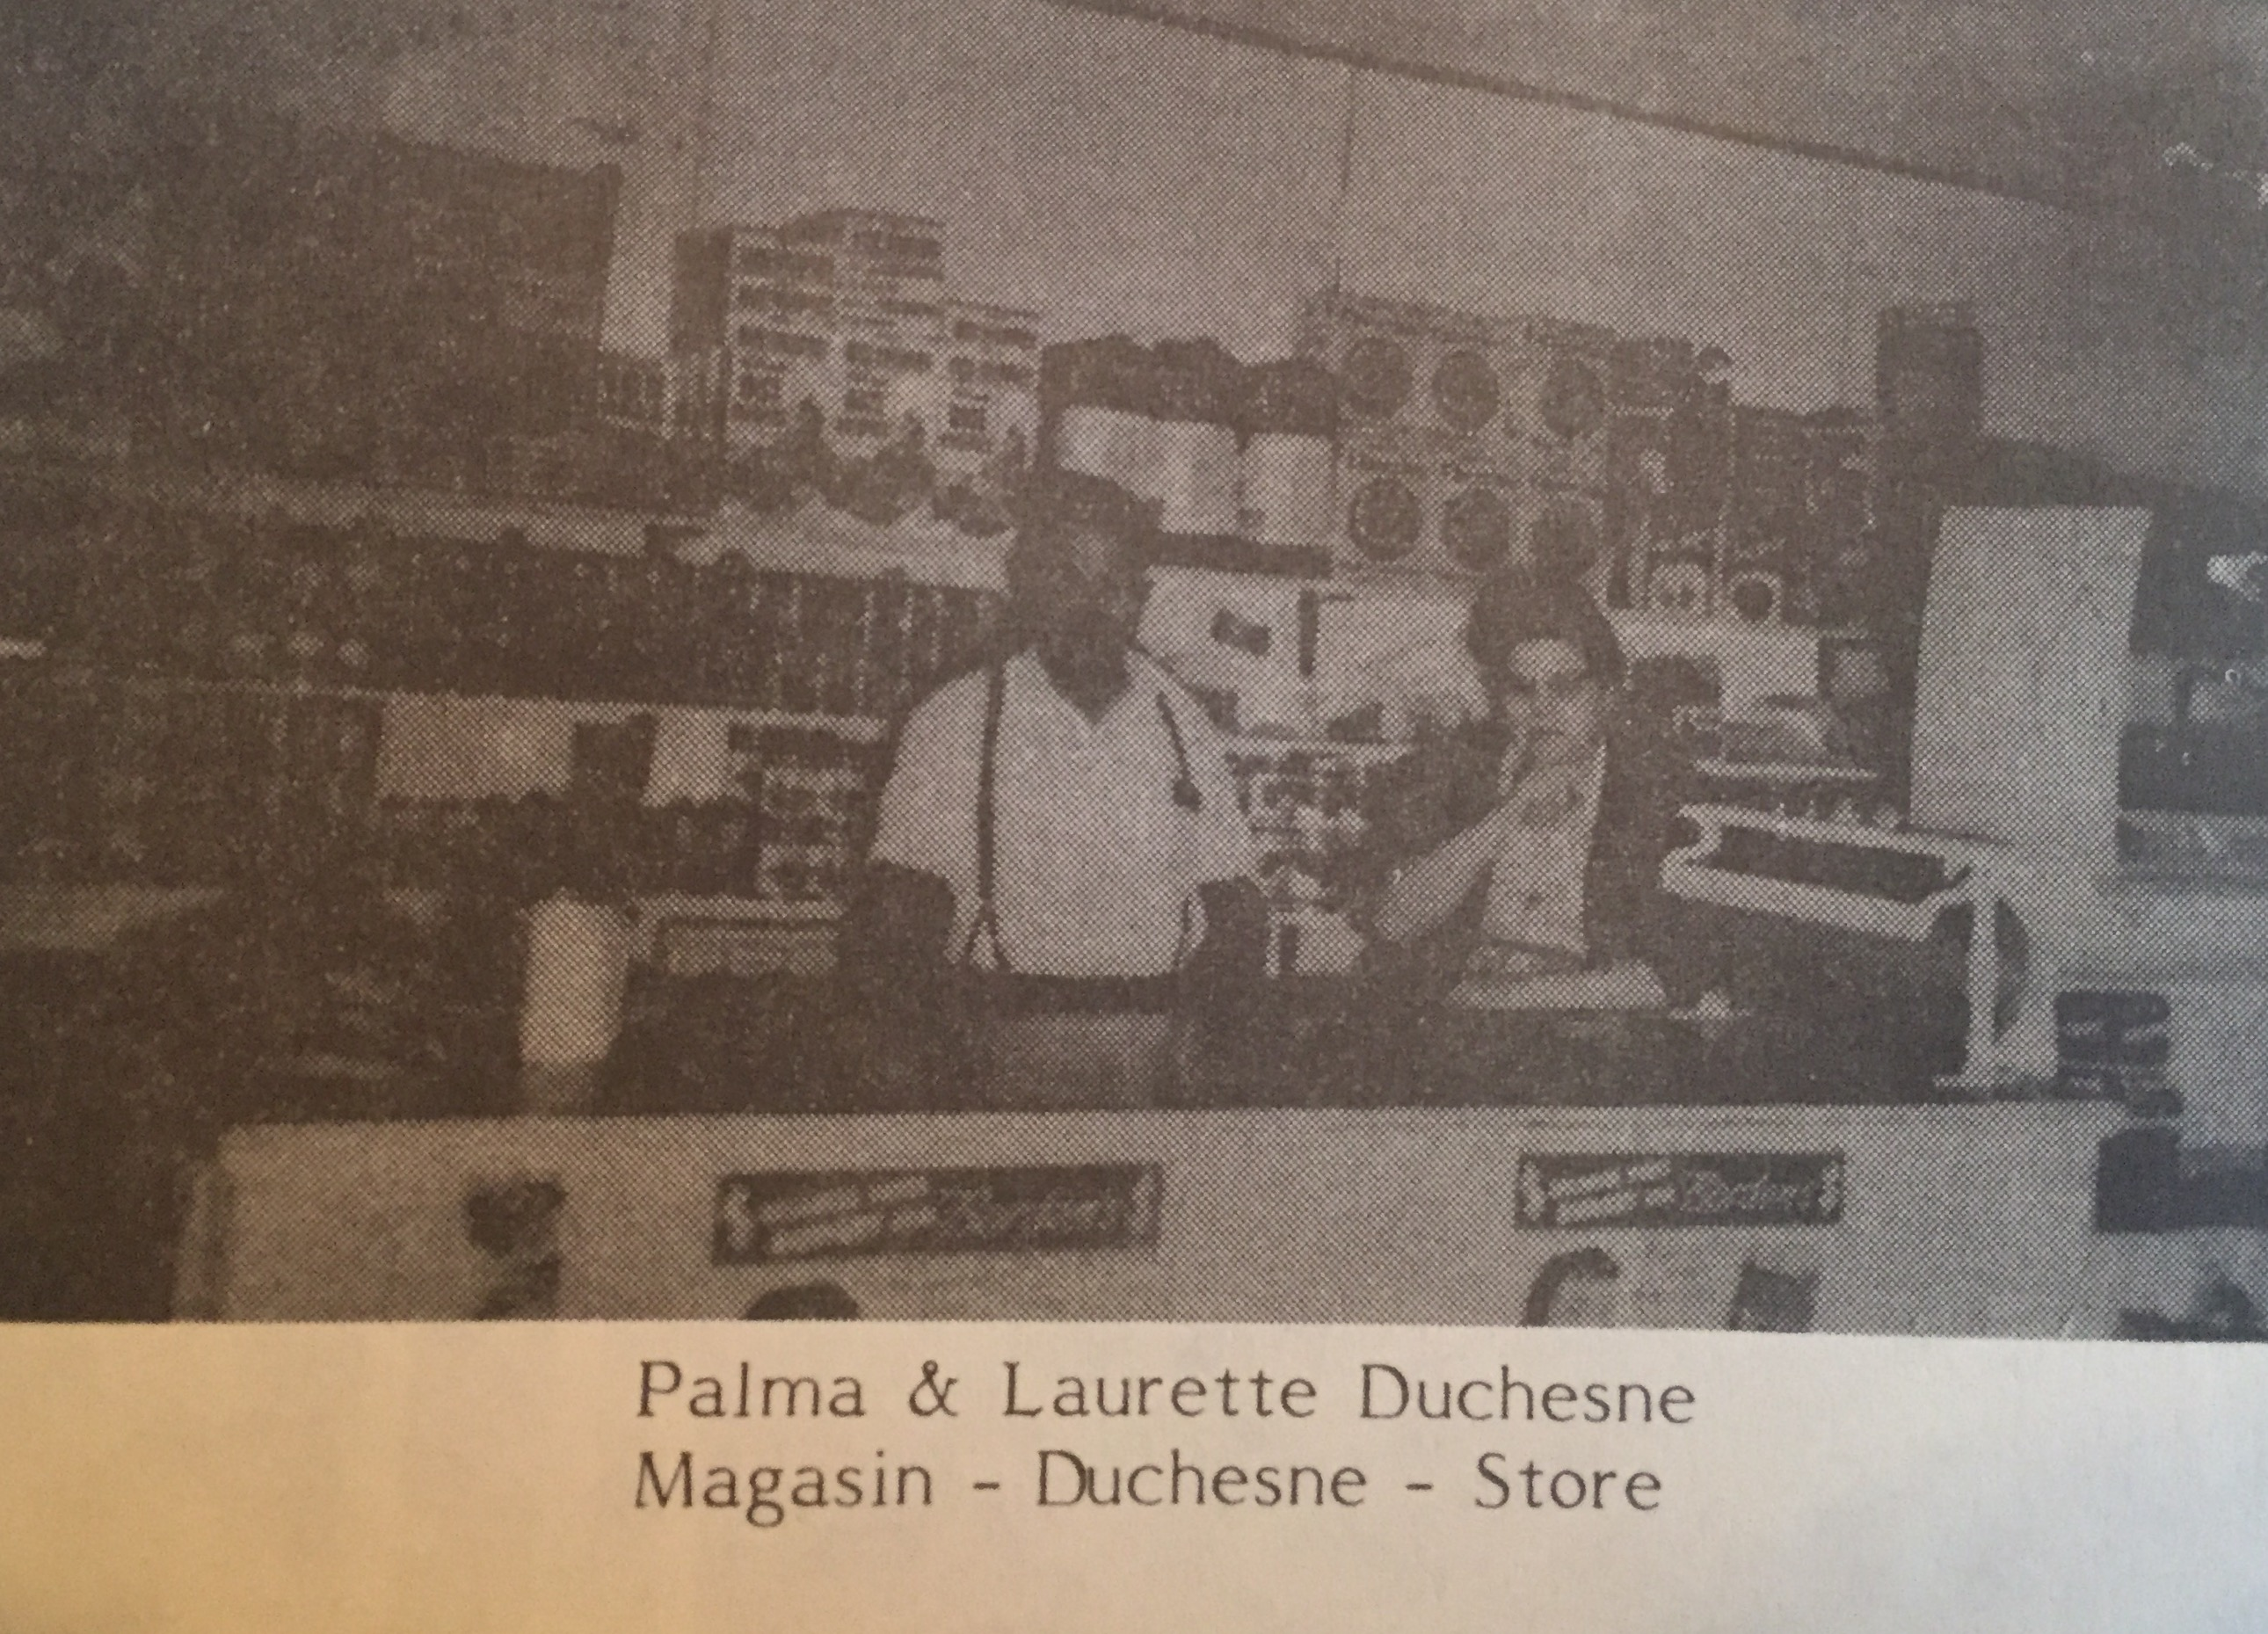 not Palma & Laurette at Magazin Duchesne